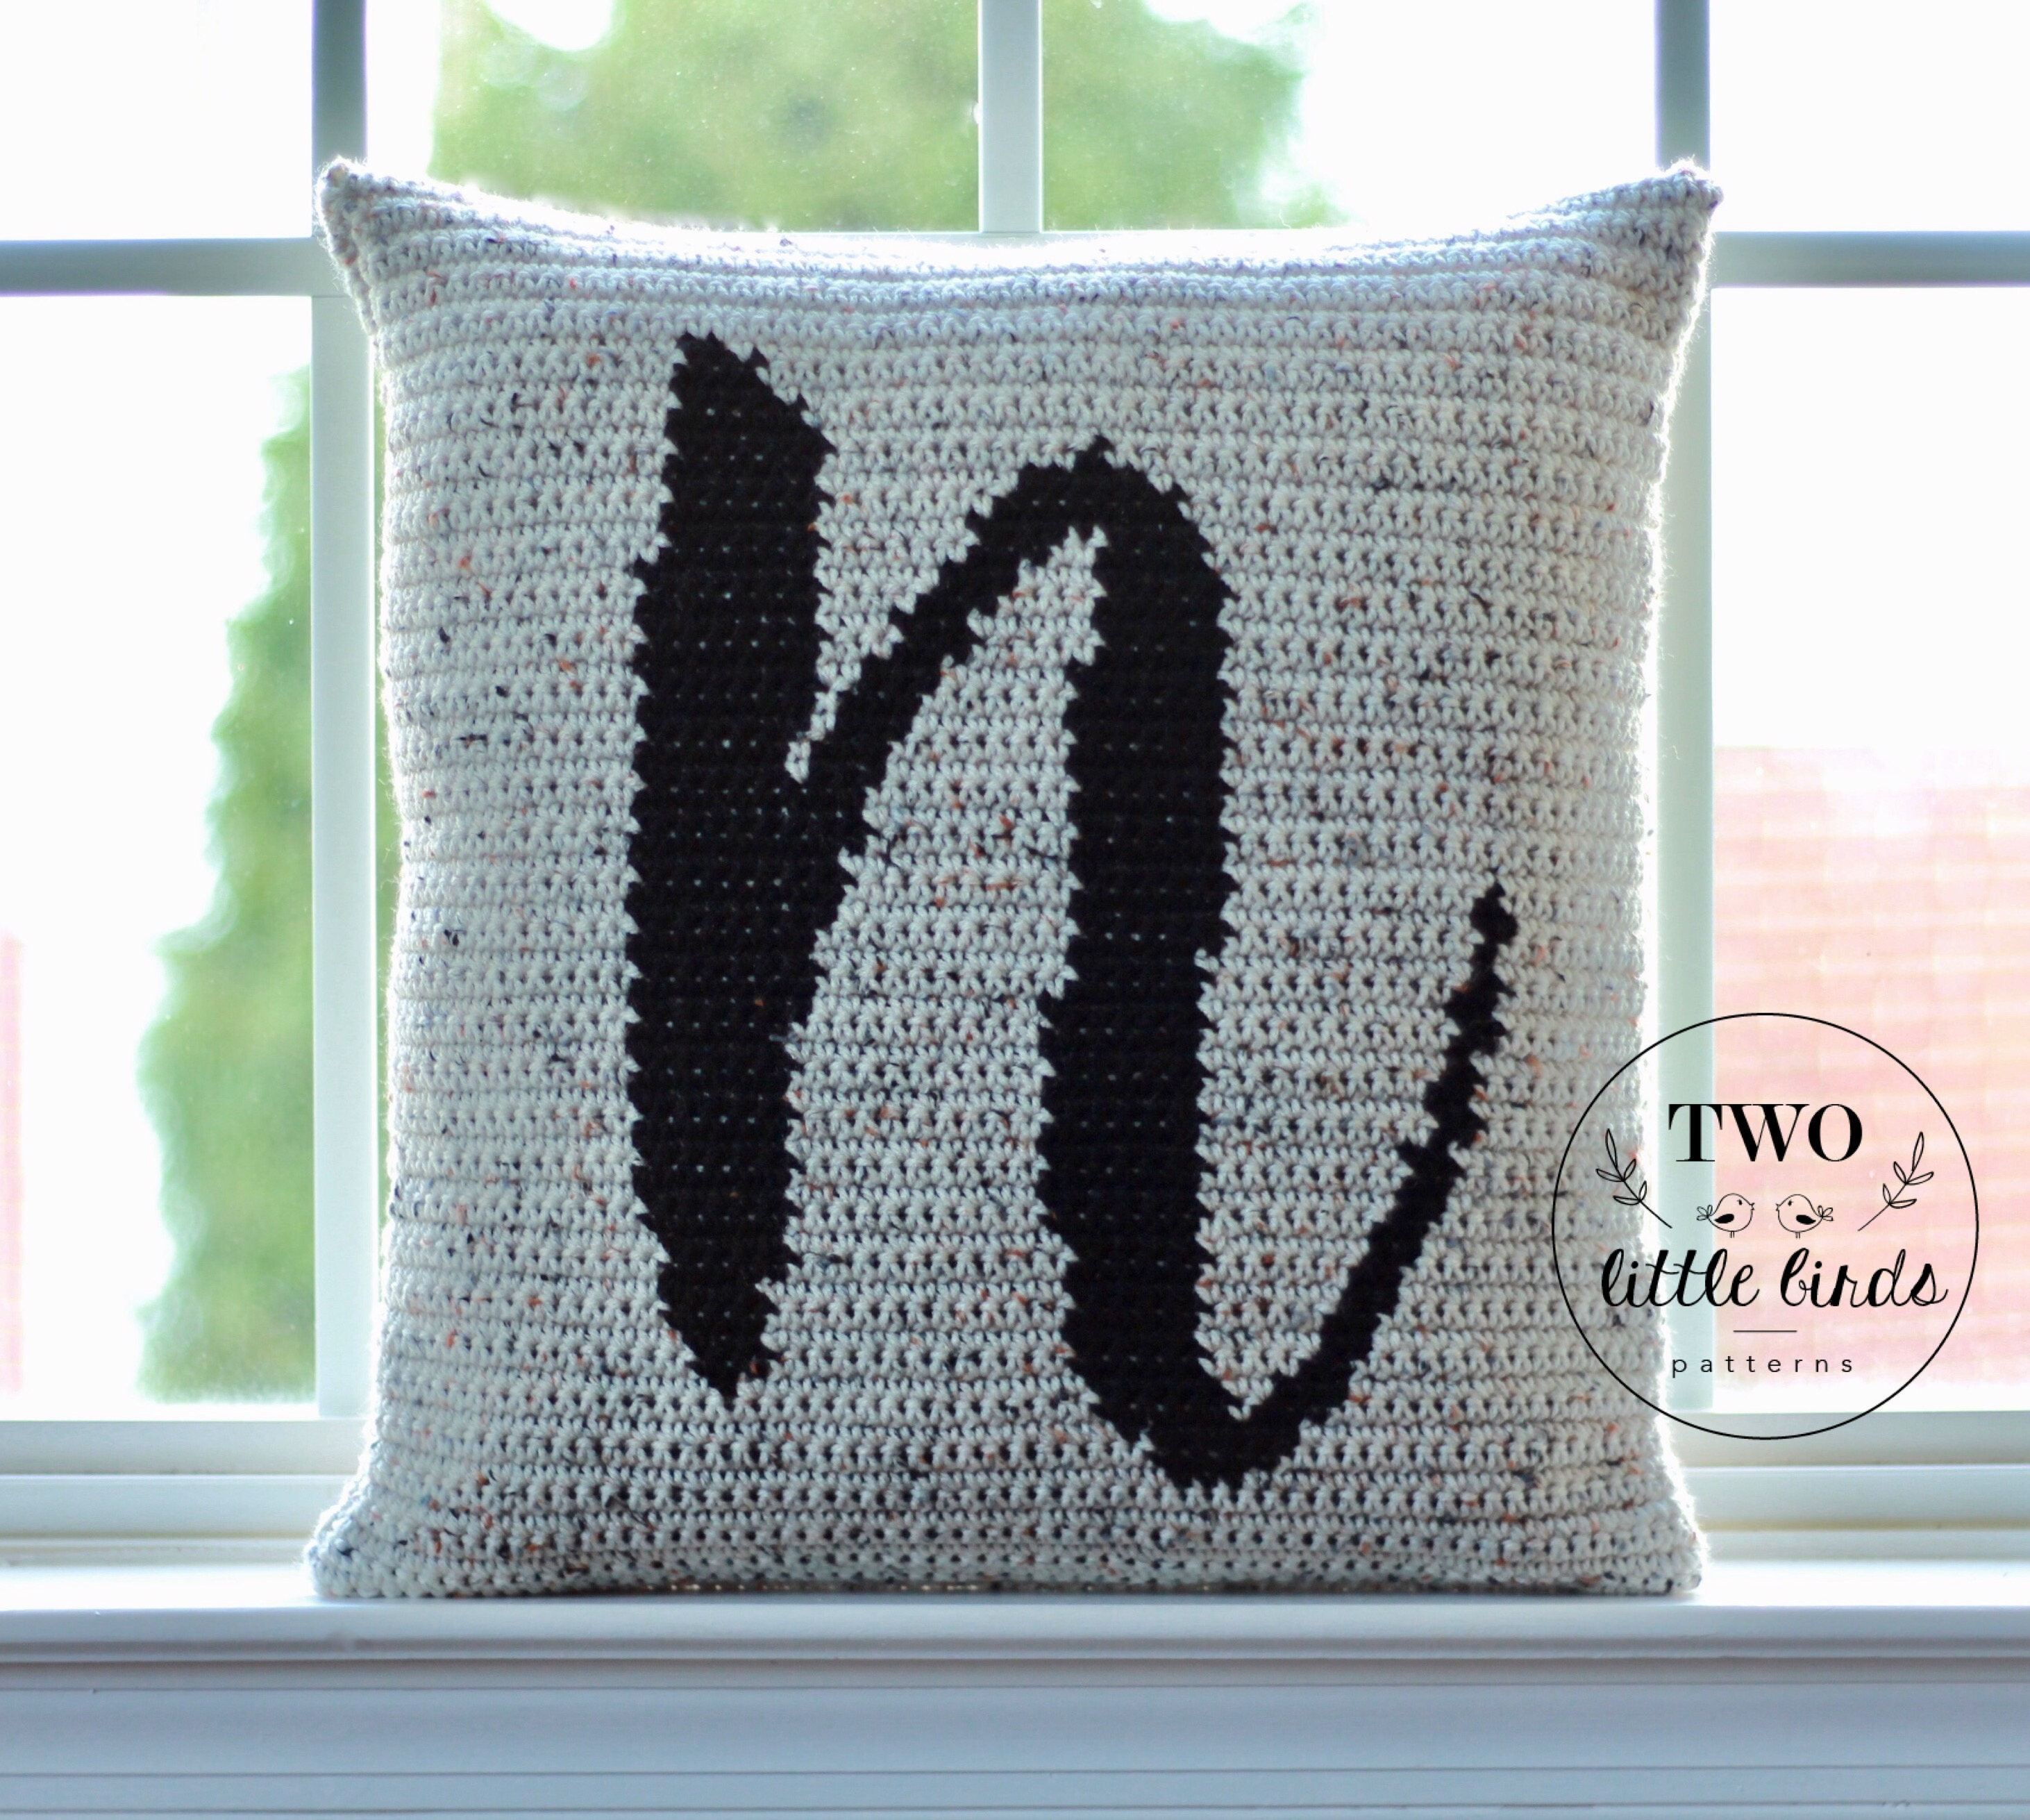 Crochet Wedding Gifts Patterns: Crochet Pattern Wedding Gift Crochet Pillow Pattern